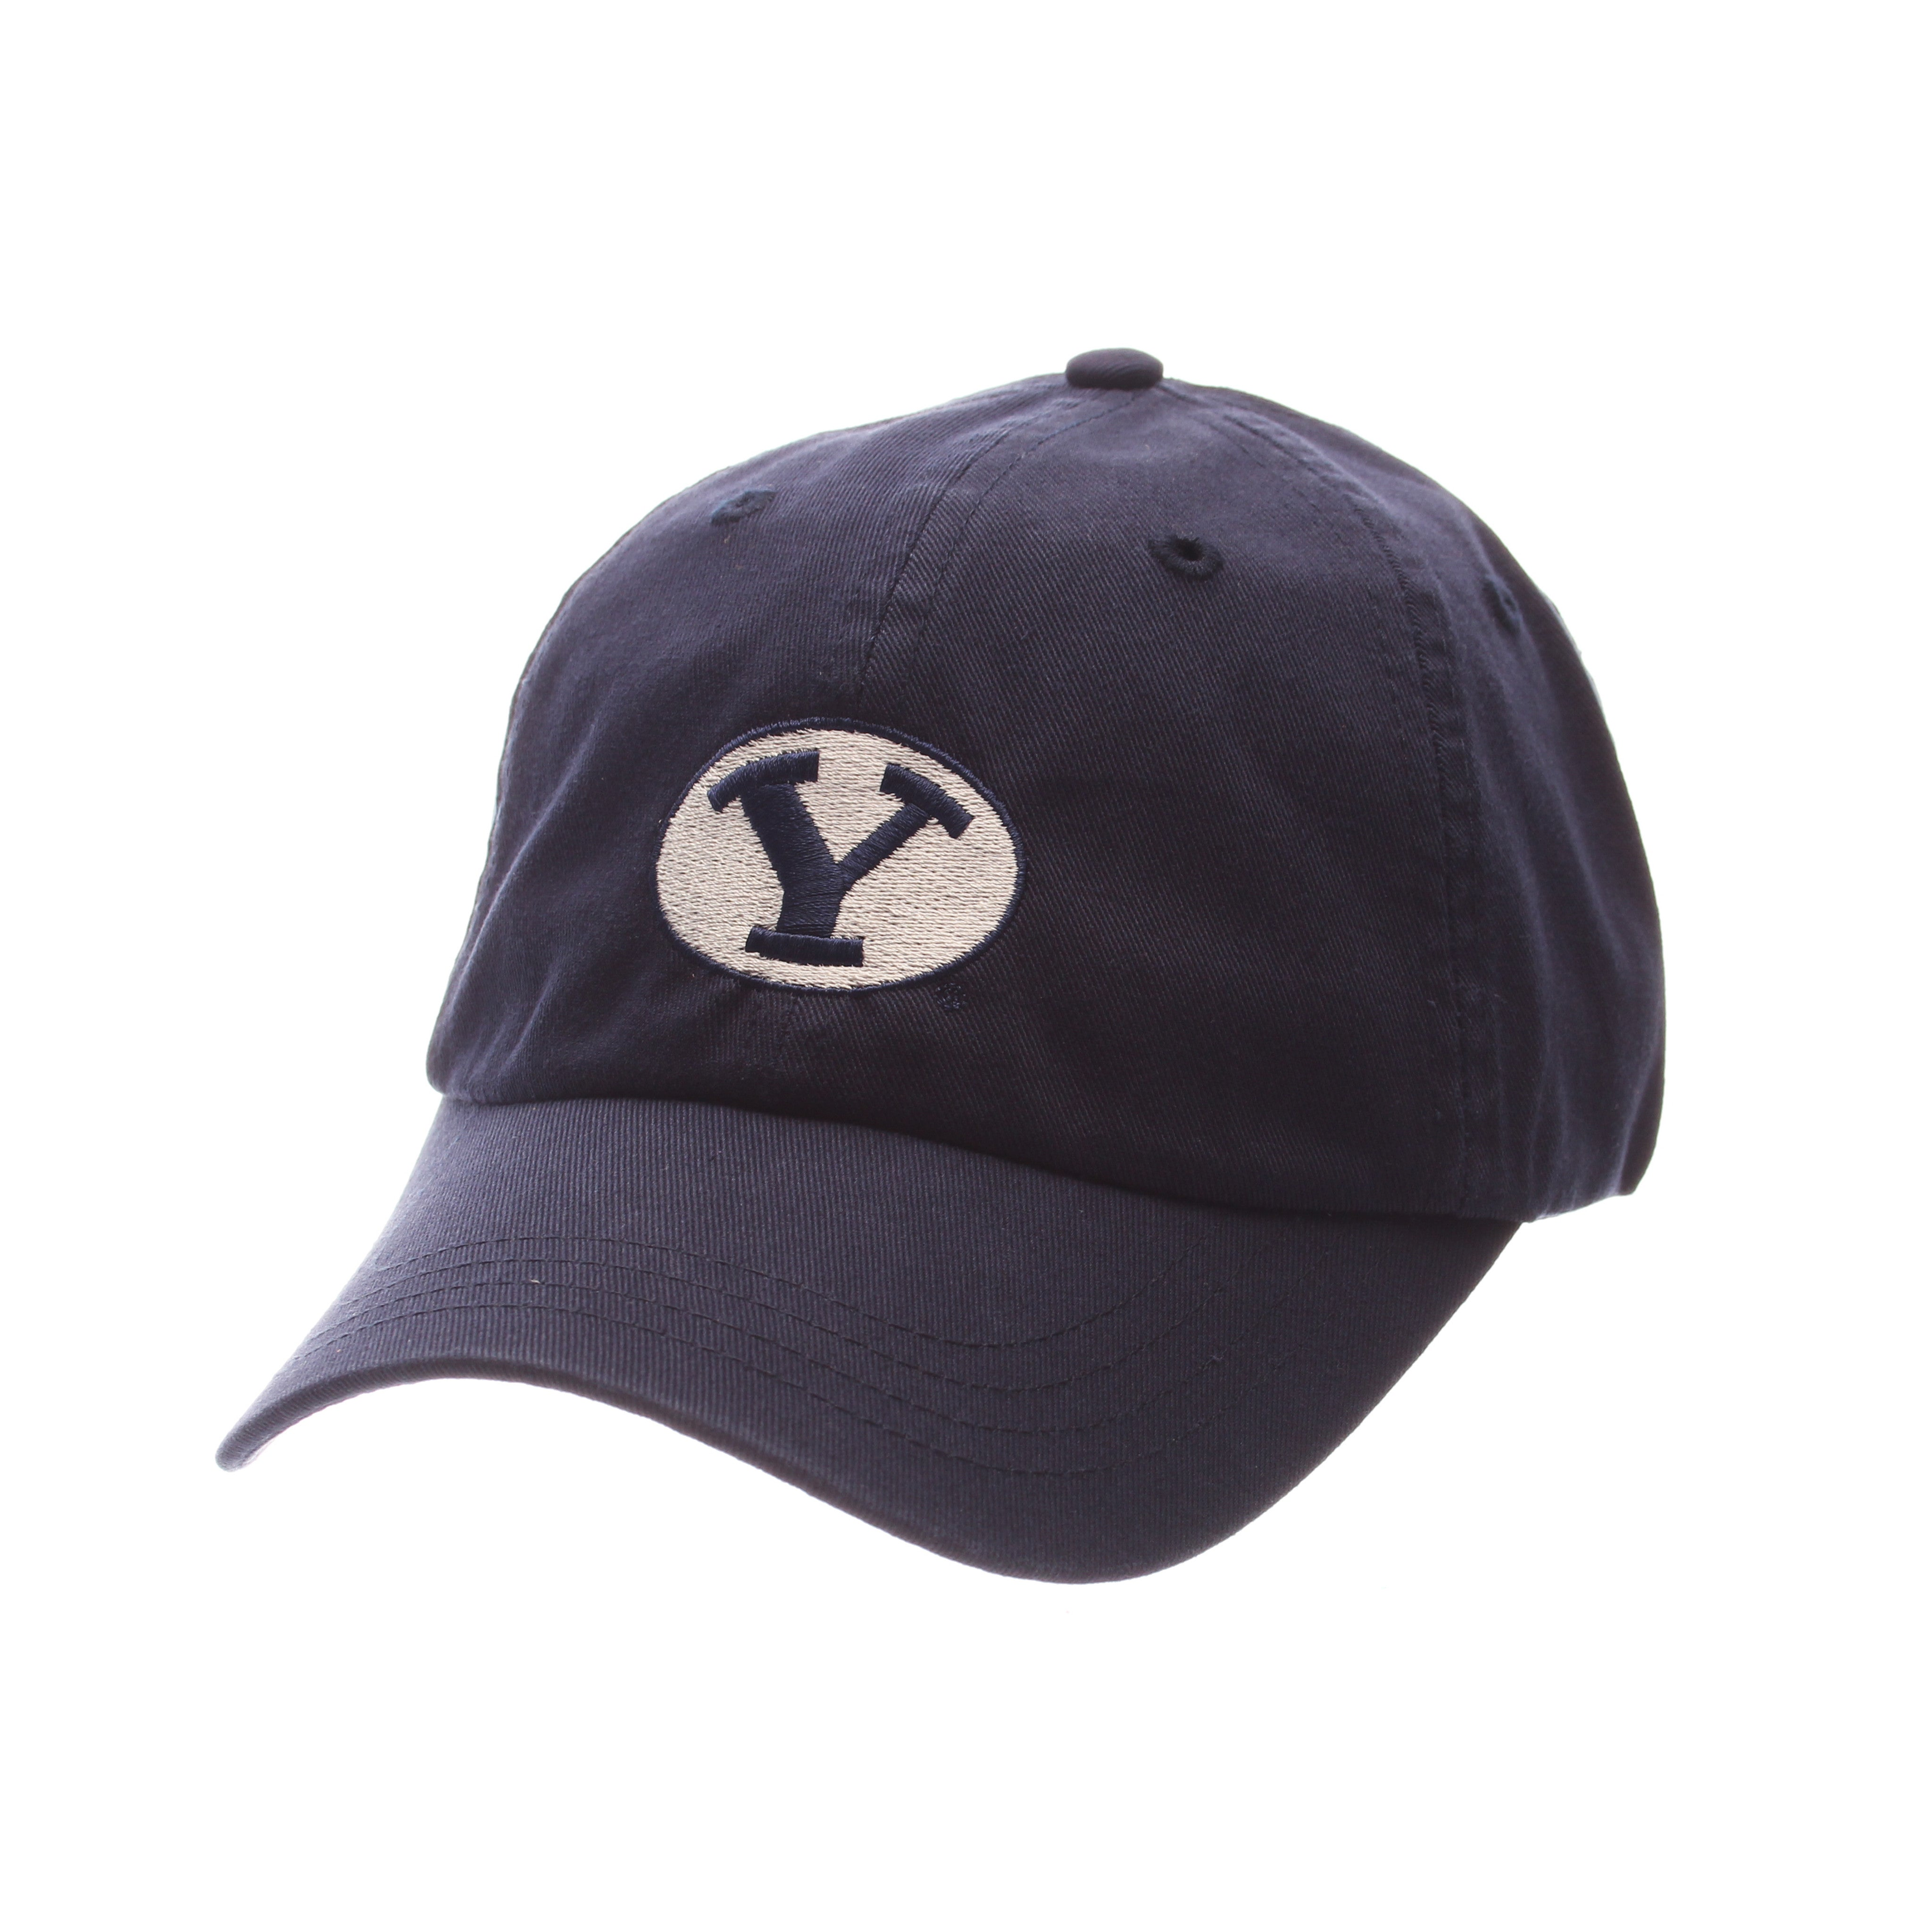 Brigham Young University Dad Hat NCAA Standard (Low) (Y OVAL) Navy Dark Washed Adjustable hats by Zephyr